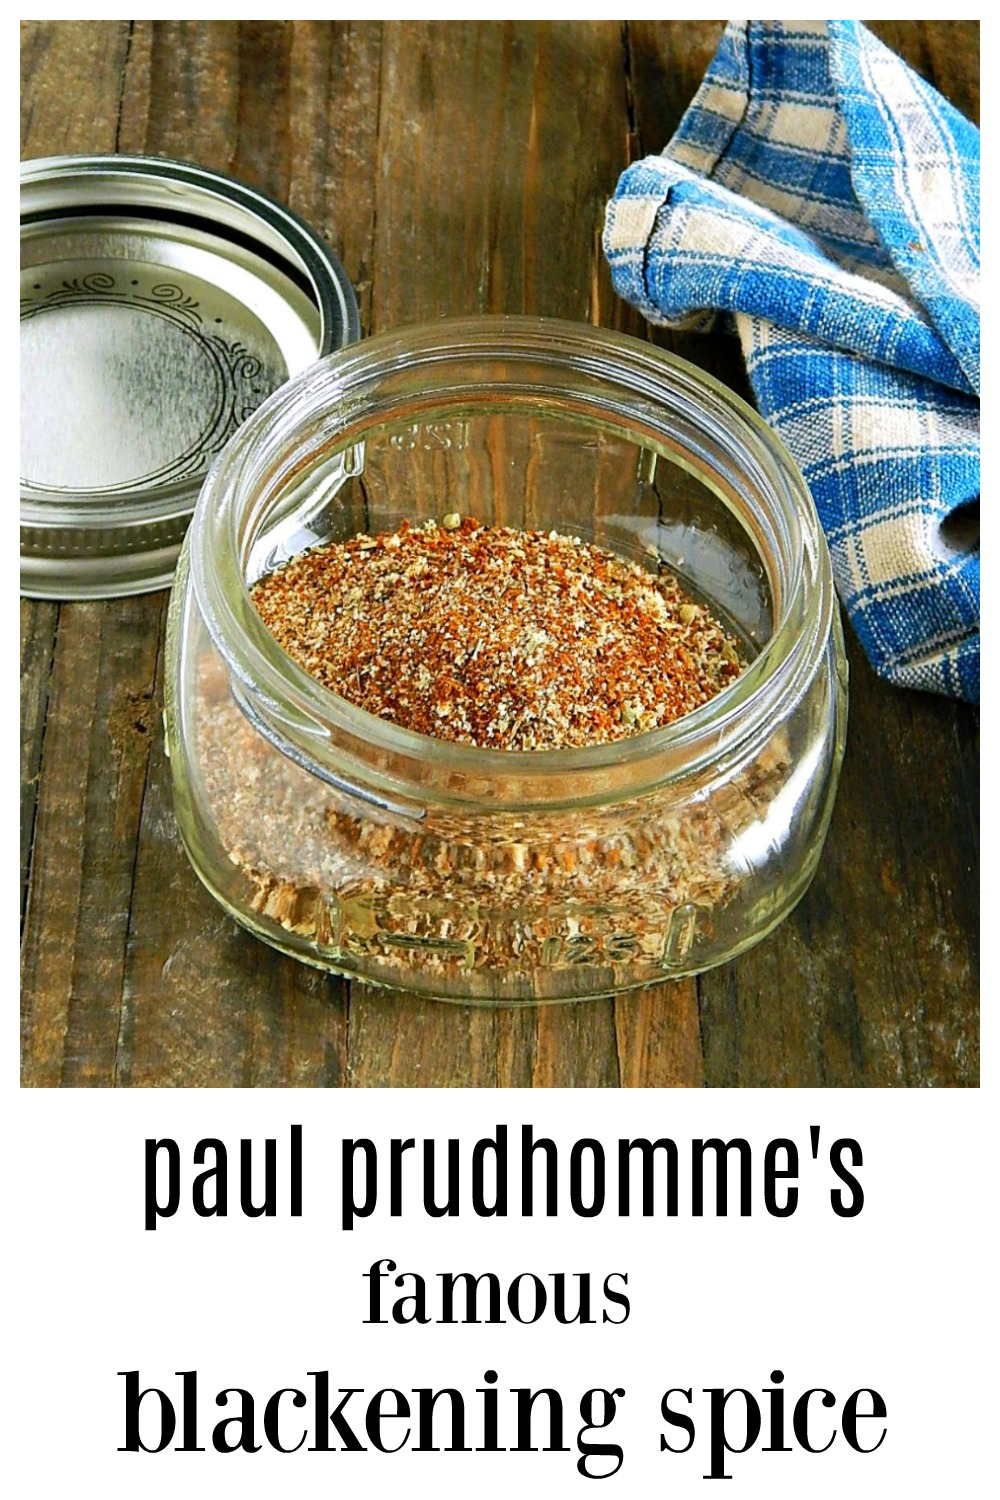 This is it, the original Paul Prudhomme's Blackened Seasoning Spice; this Cajun seasoning made the New Orlean's chef famous. Sprinkle it on everything!! #BlackenedSeasoning #PaulPrudhomme #PaulPrudhommesBlackenedSeasoning #PaulPrudhommesBlackenedSpice #PaulPrudhommesRedfishSeasoning #PaulPrudhommesBlackeningSpice #NewOrleans